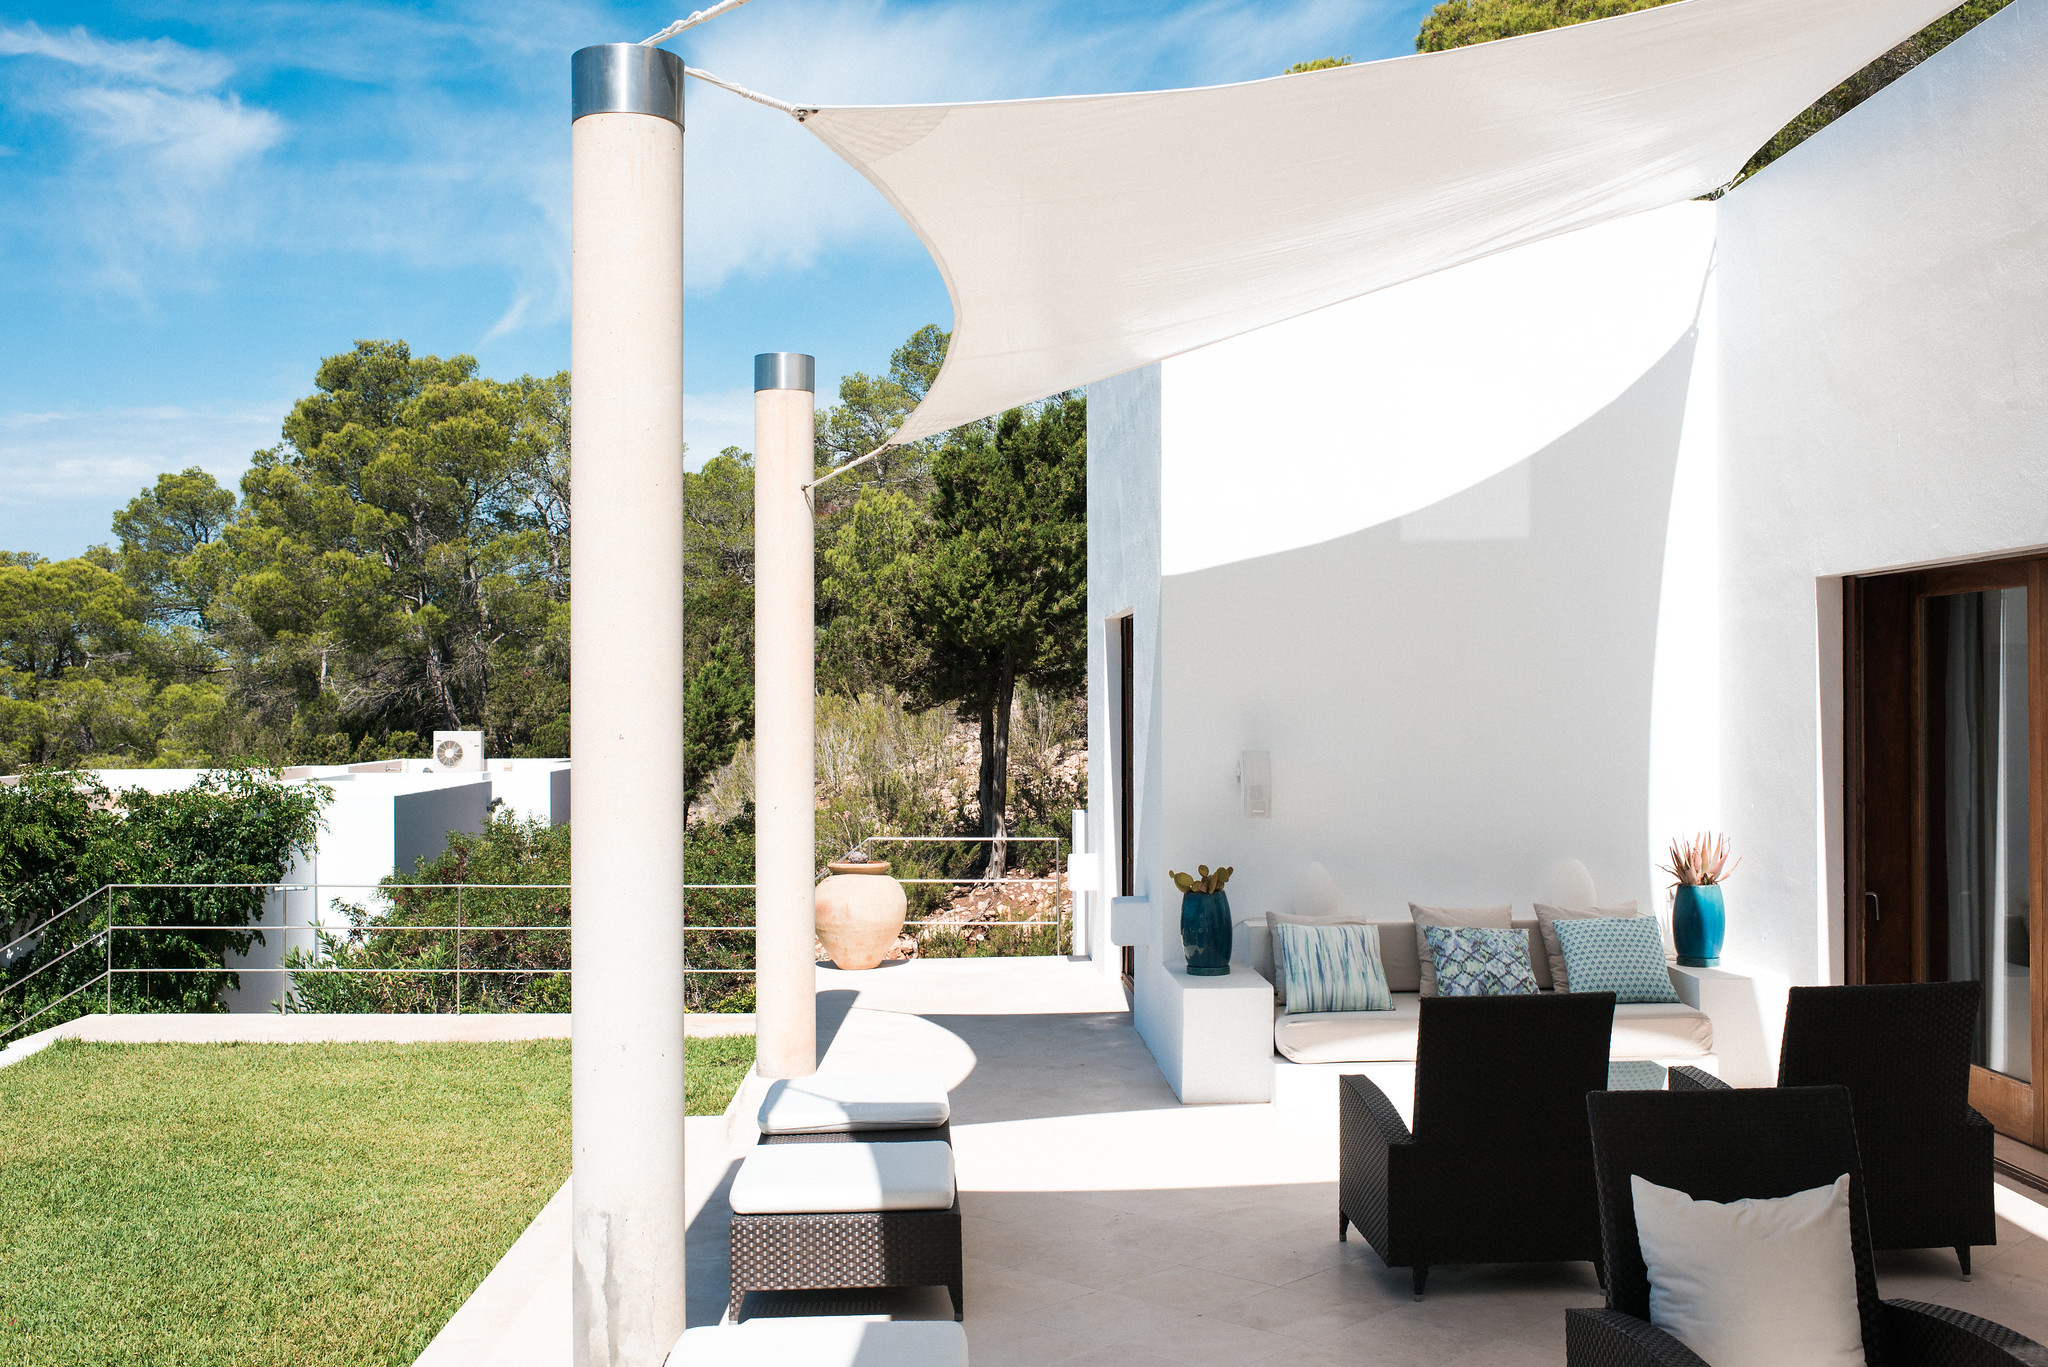 https://www.white-ibiza.com/wp-content/uploads/2020/05/white-ibiza-villas-can-ava-outside-seating.jpg